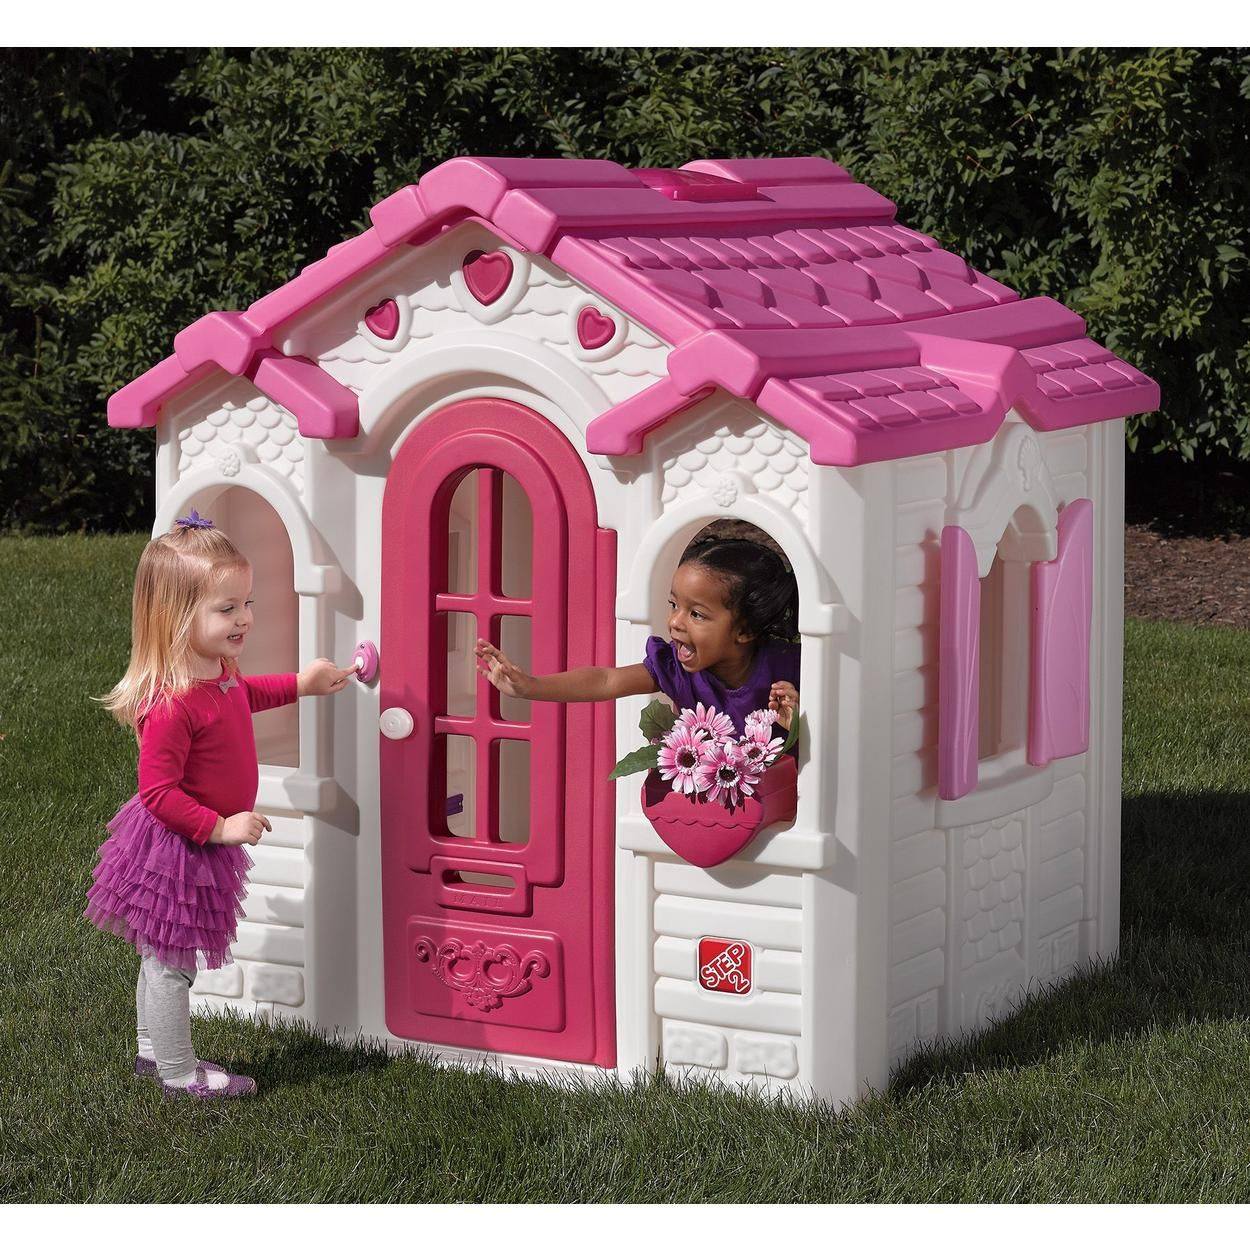 Sweetheart Playhouse for $449.99